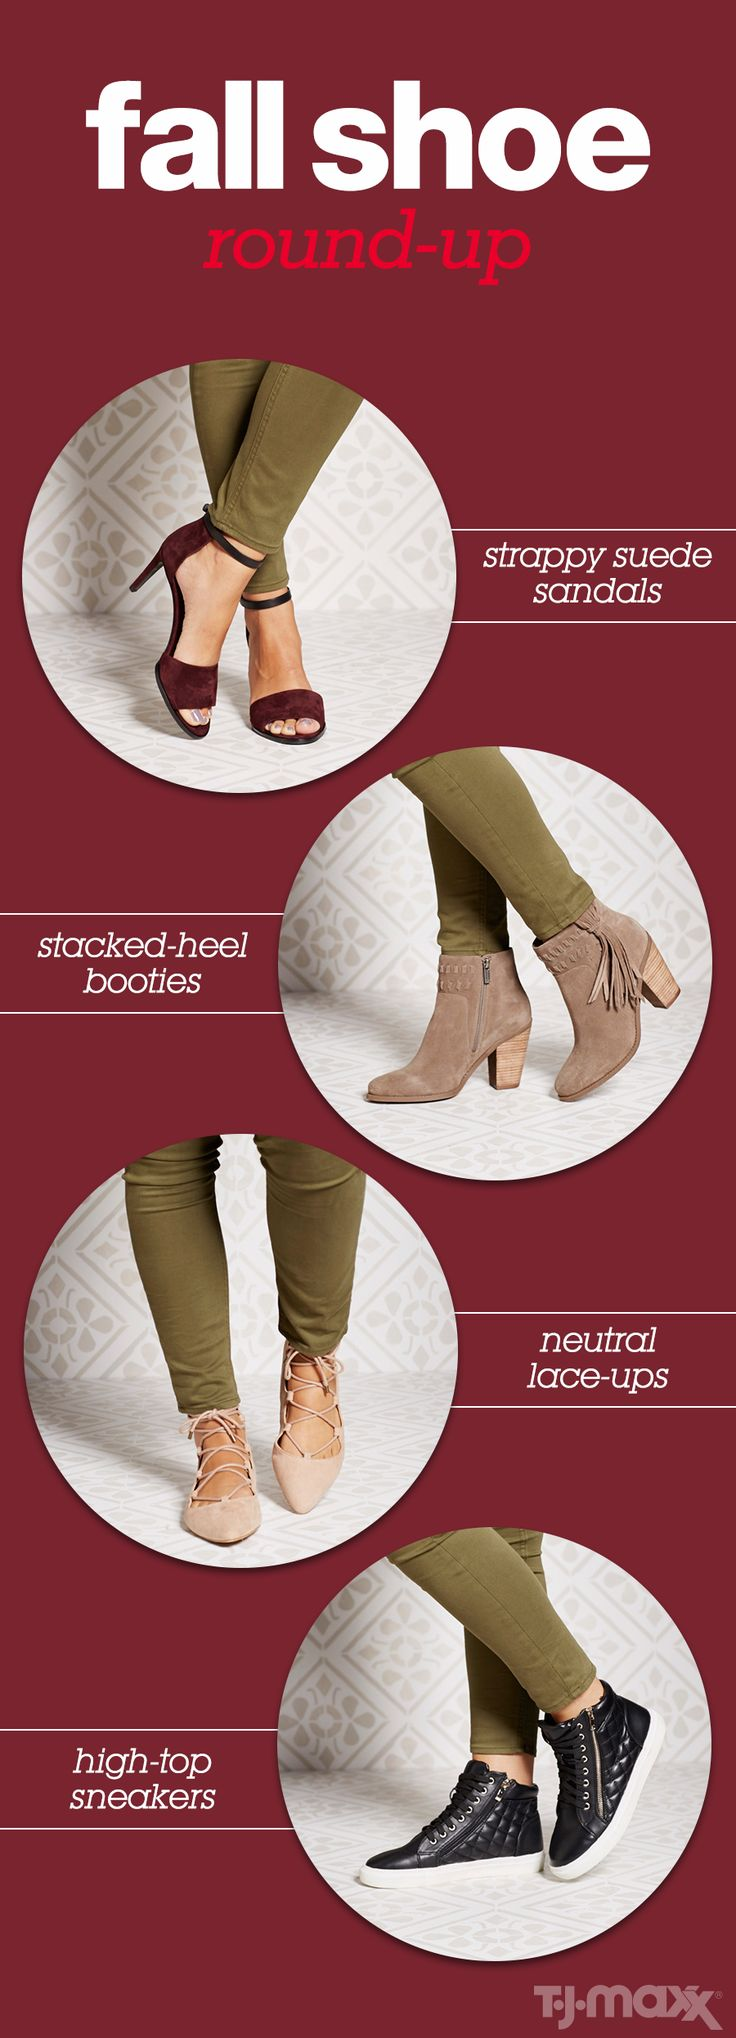 Get your feet fall-ready with these essential shoe picks. Special occasion sandals in rich colors and textures like suede. A stacked heel bootie is a cool-weather must when you need to be comfortable but not too casual. Everyday flats get an upgrade this season with laces and a pointed toe. And weekends call for sneaker switch from white canvas to black leather high tops.